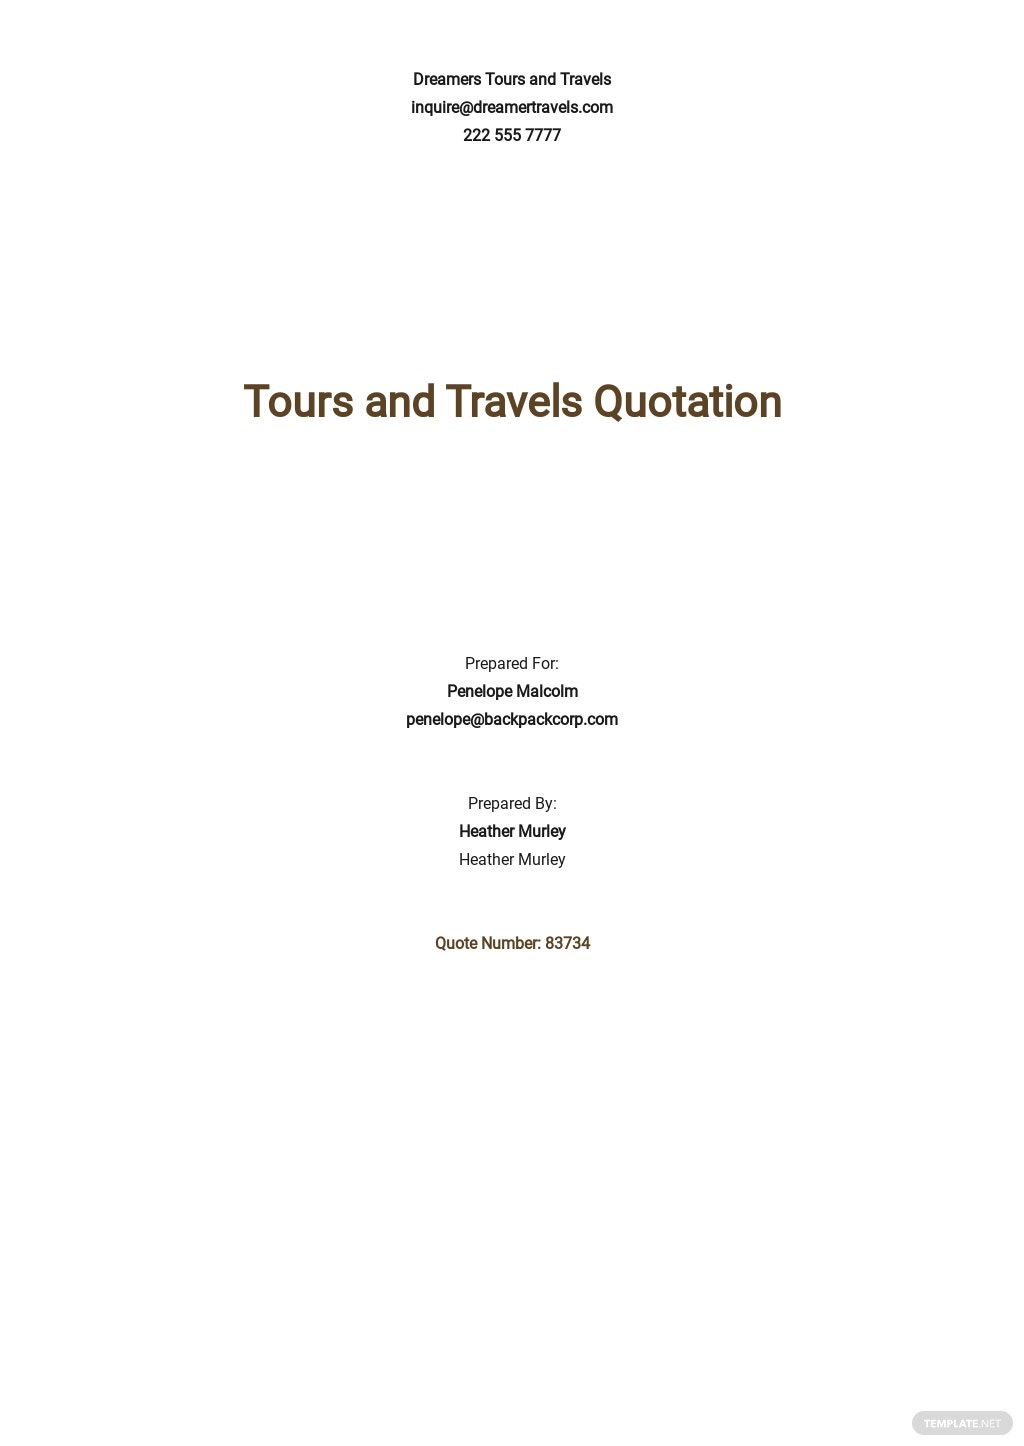 Free Tours and Travel Quotation Template.jpe